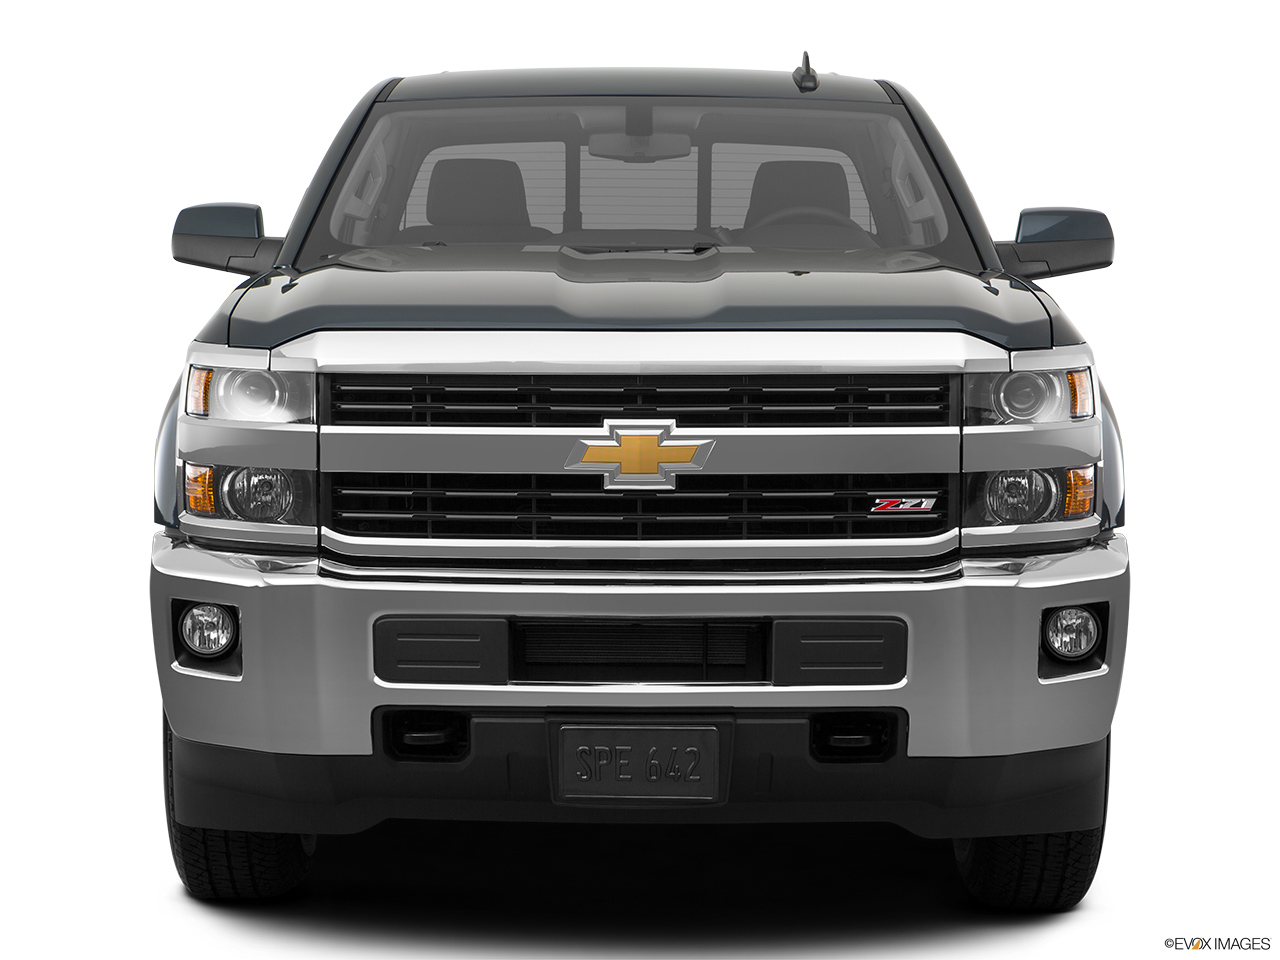 chevrolet silverado 2017 midnight edition 1500 in uae new car prices specs reviews photos. Black Bedroom Furniture Sets. Home Design Ideas